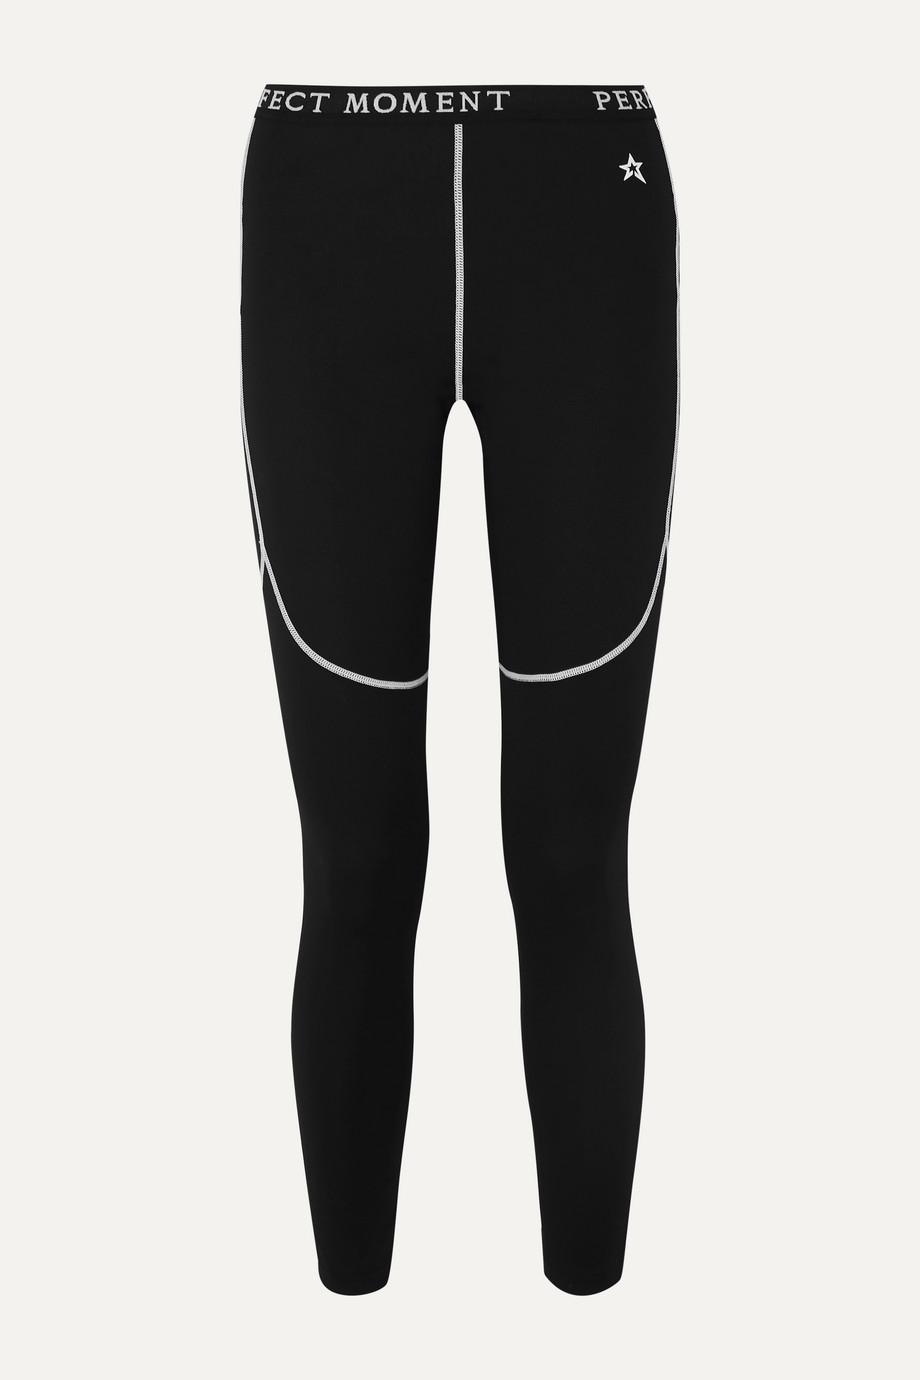 PERFECT MOMENT Thermal stretch ski pants